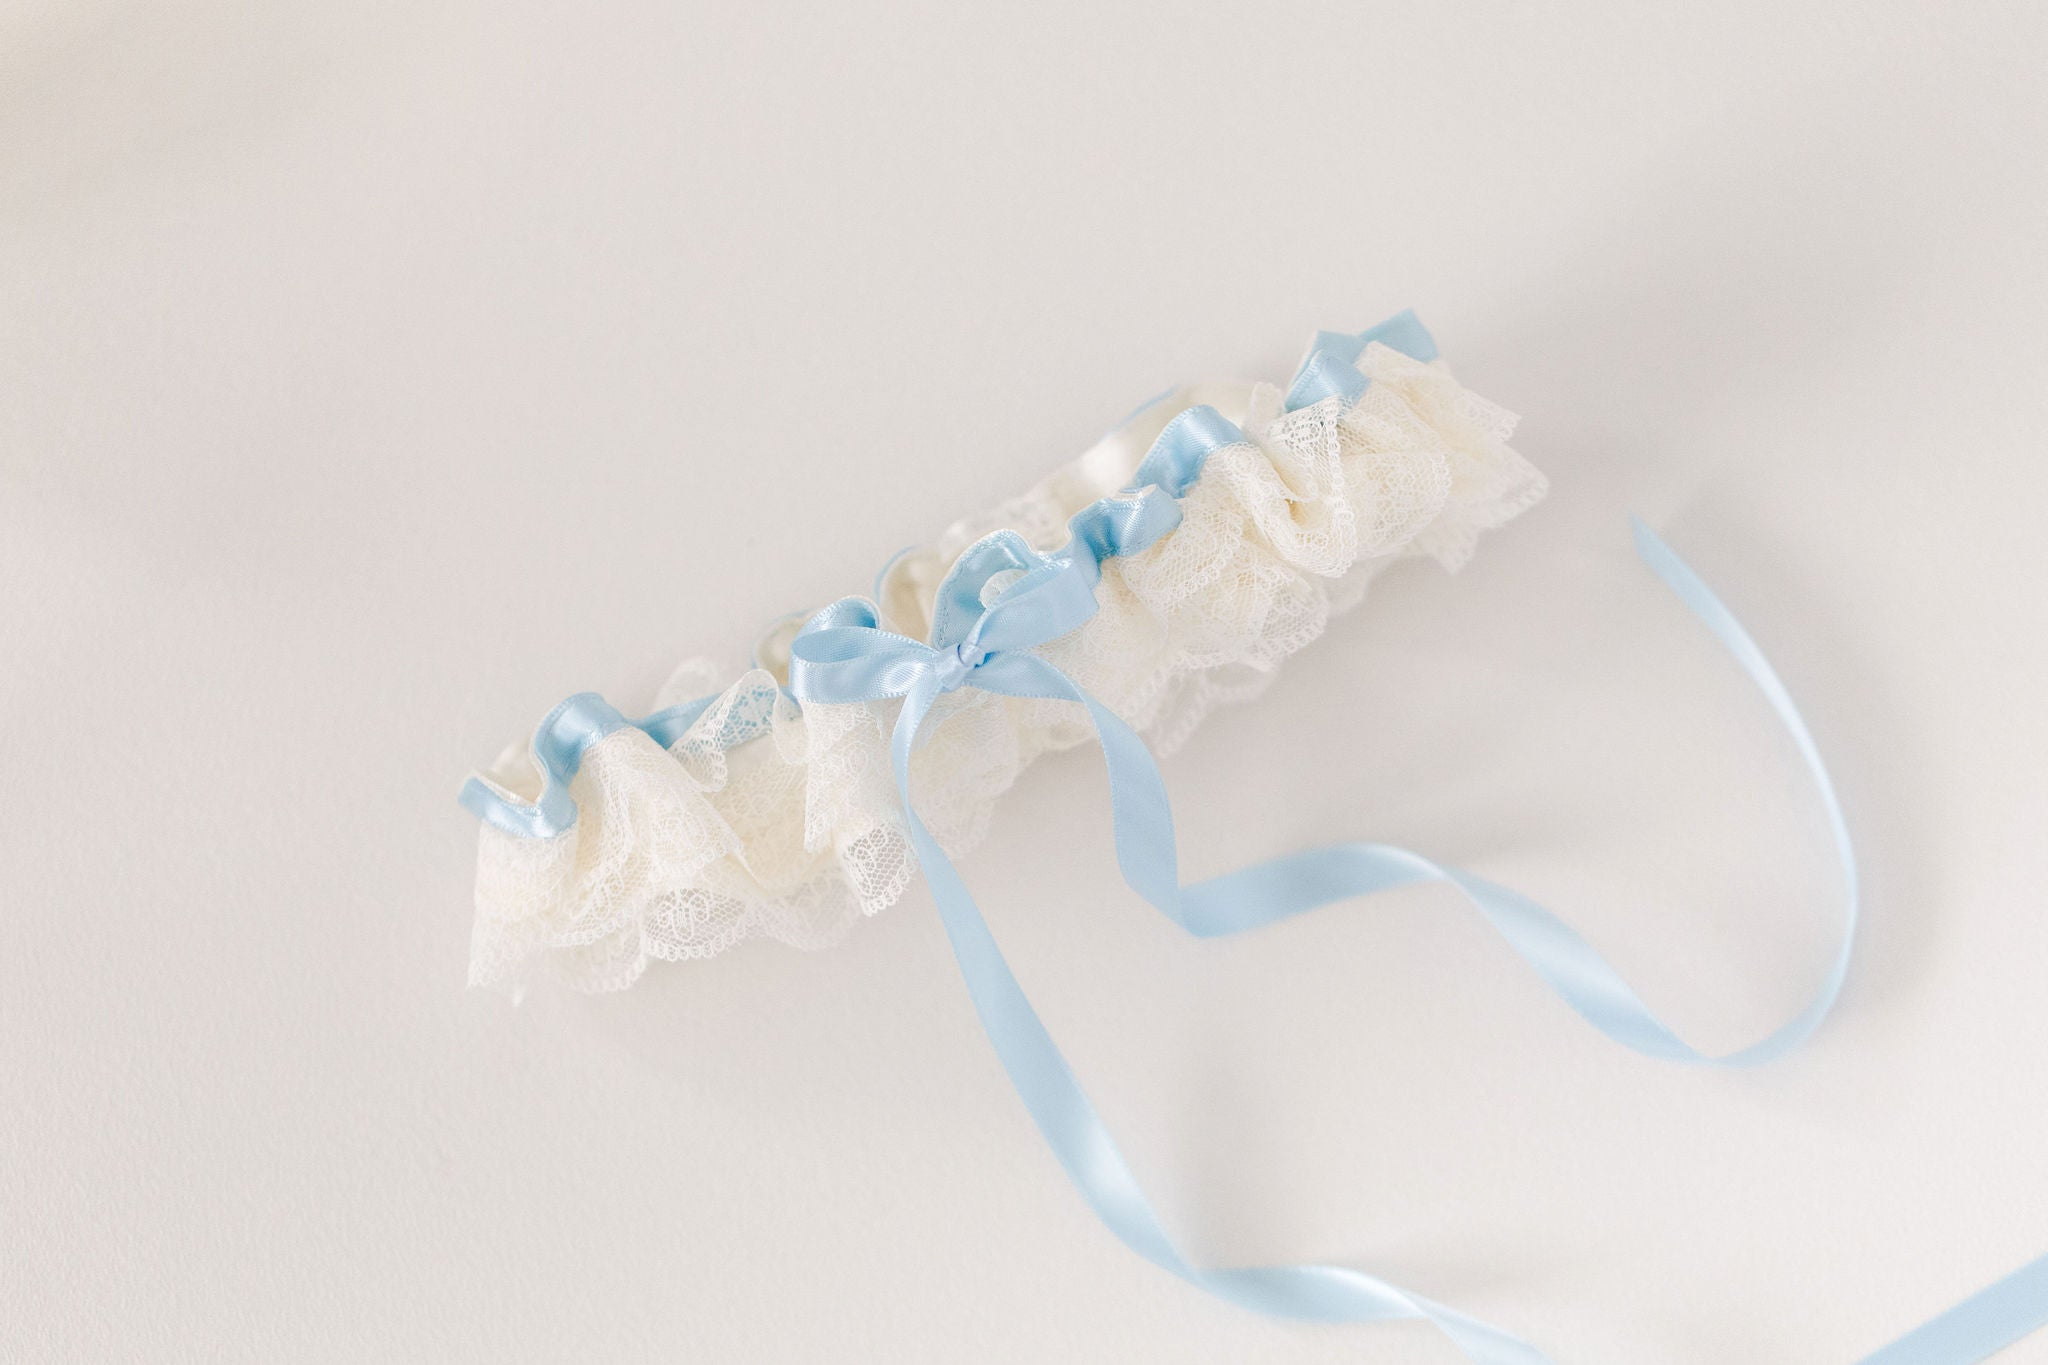 custom wedding garter heirloom handmade by expert garter designer, The Garter Girl